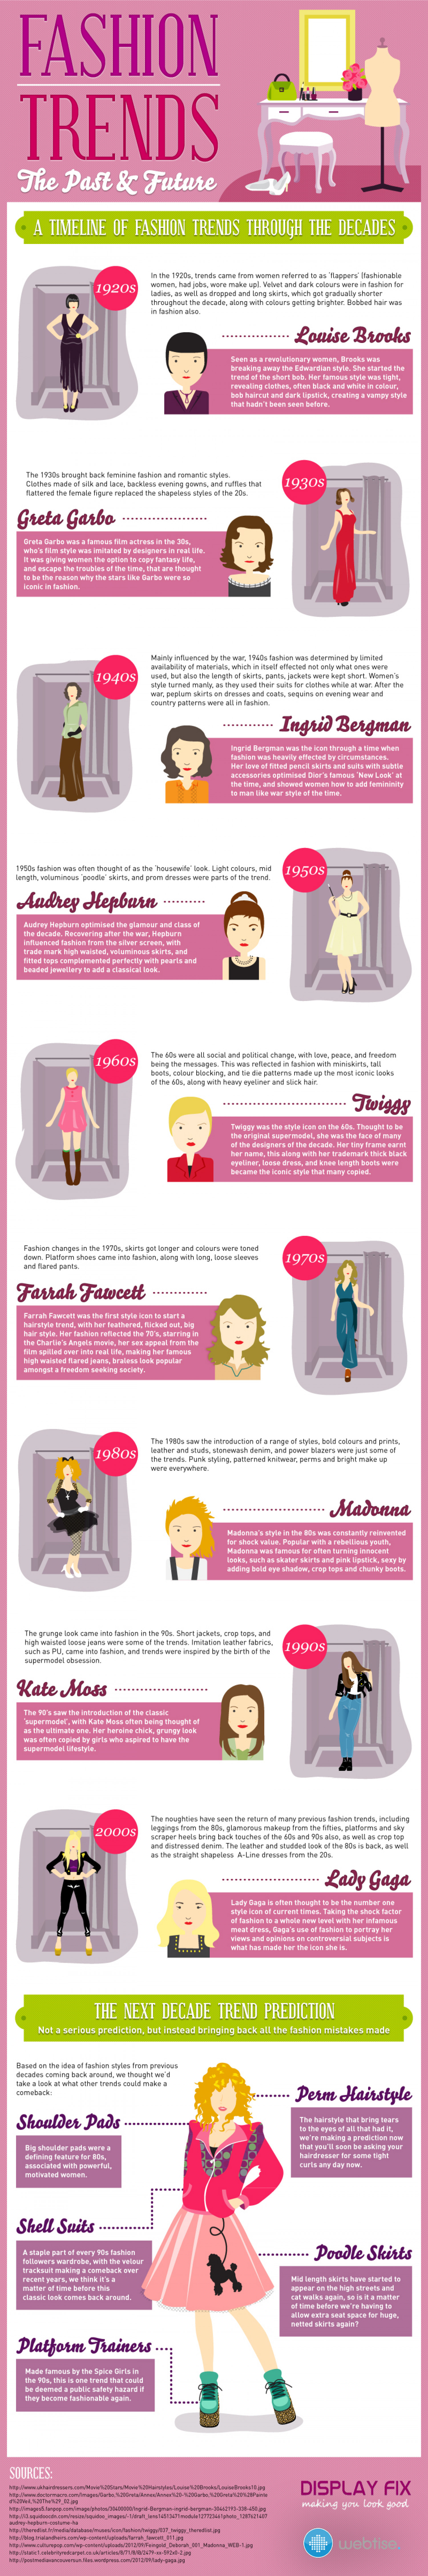 Fashion Trends – The Past & Future Infographic